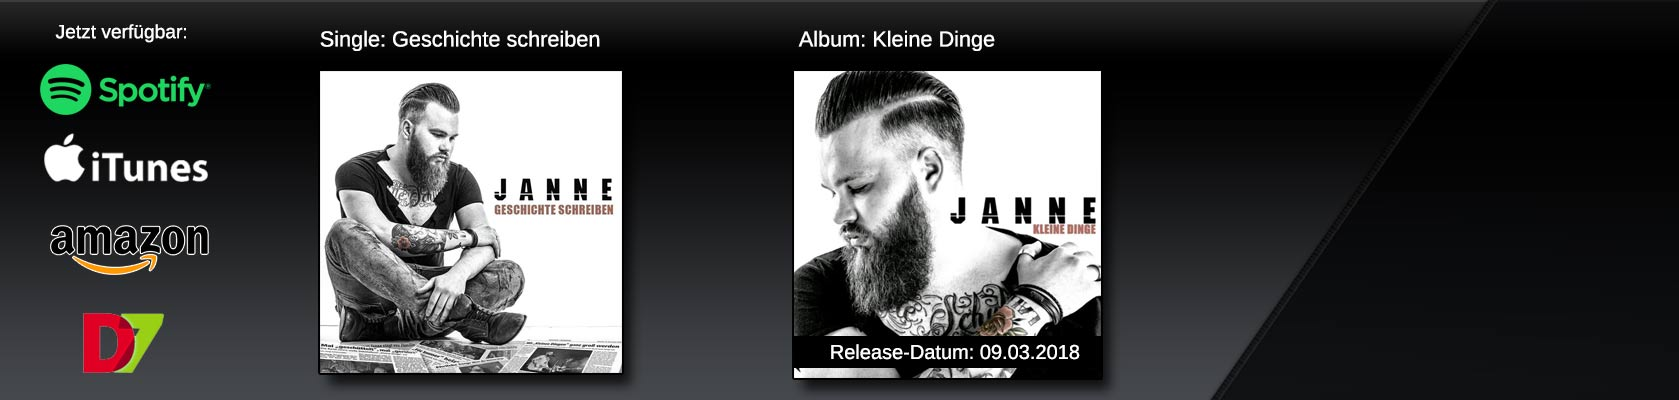 janne-cd-banner-homepage